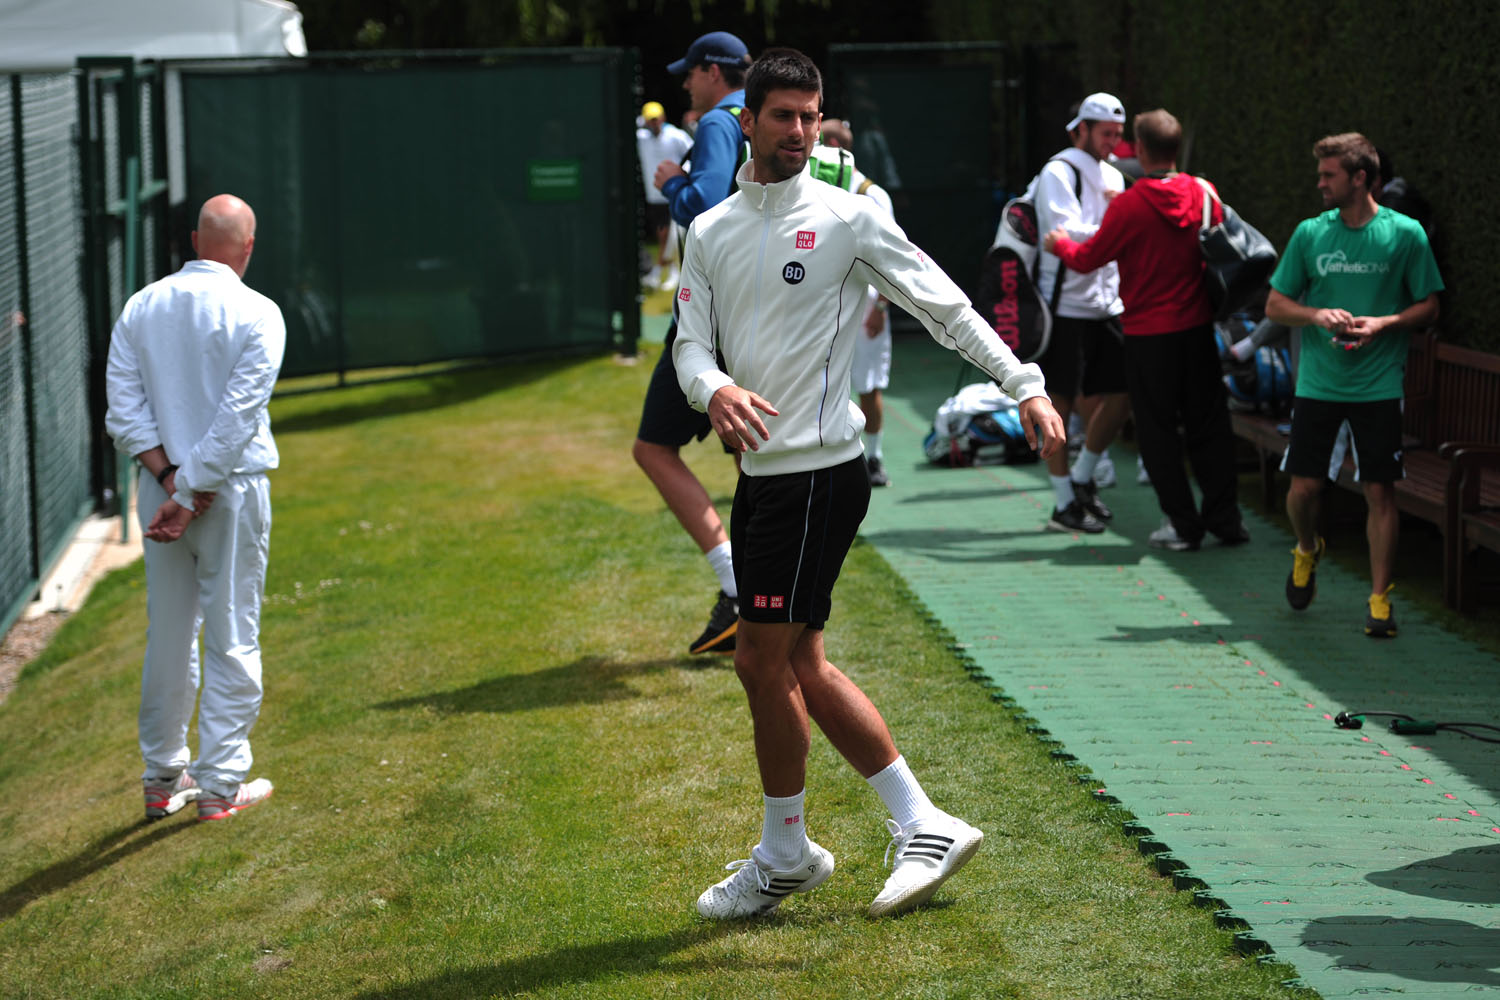 Novak Djokovic works out during a training session at the All England Tennis Club in Wimbledon, southwest London, on June 23, 2013, on the eve of the start of the 2013 Wimbledon Championships.